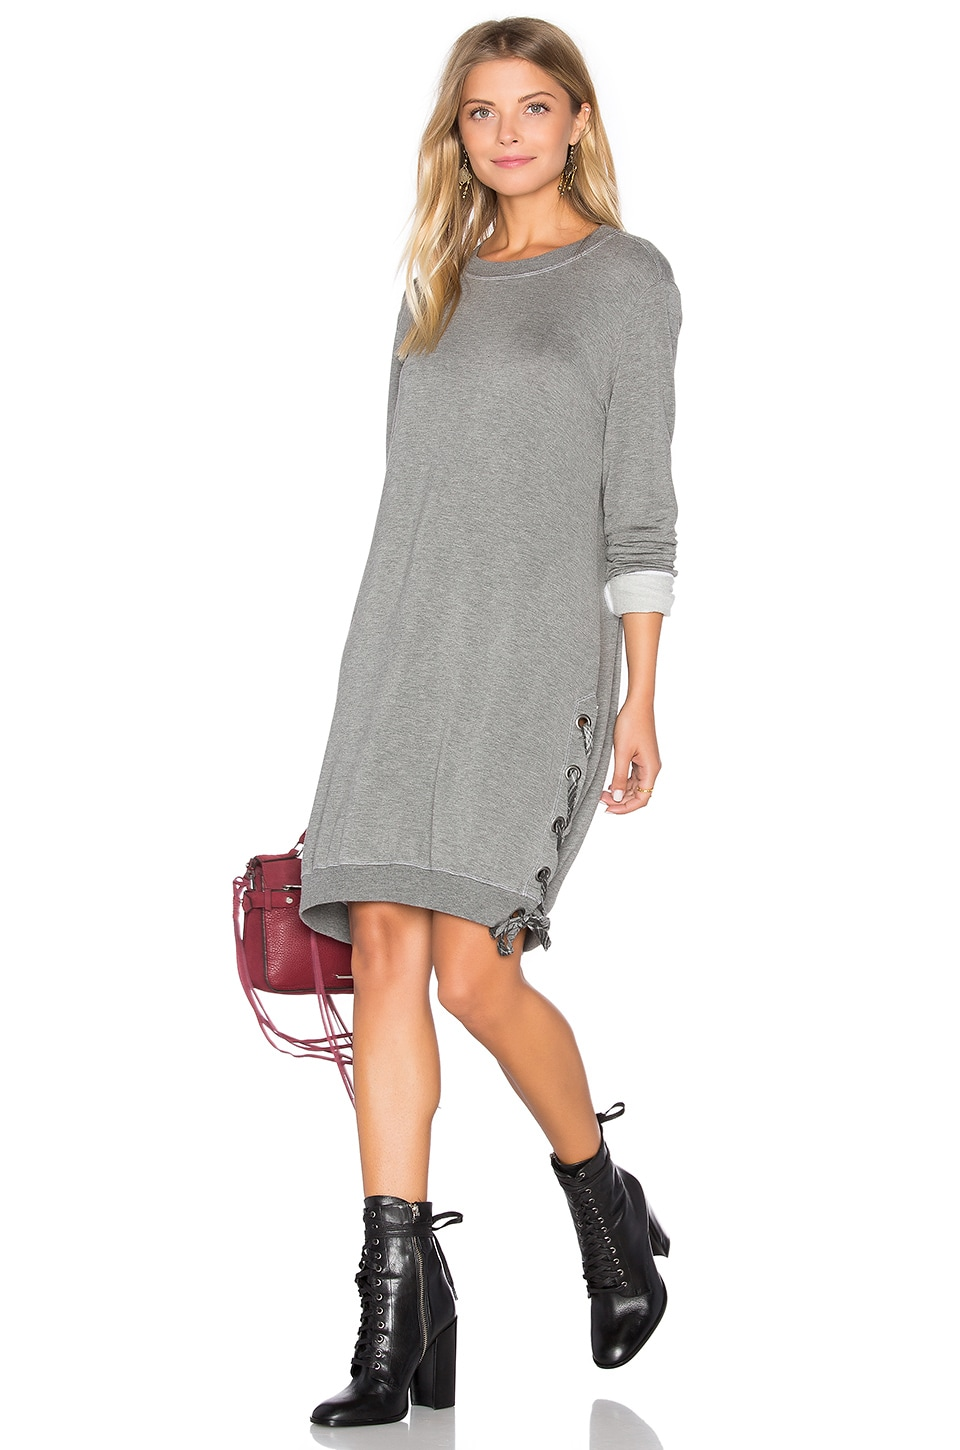 Lace Up Sweatshirt Dress by Bella Dahl